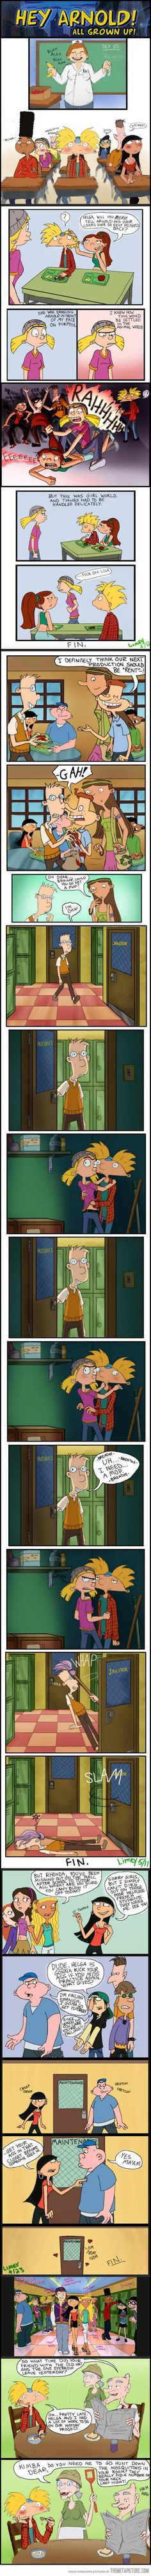 hey arnold meets mean girls lmao